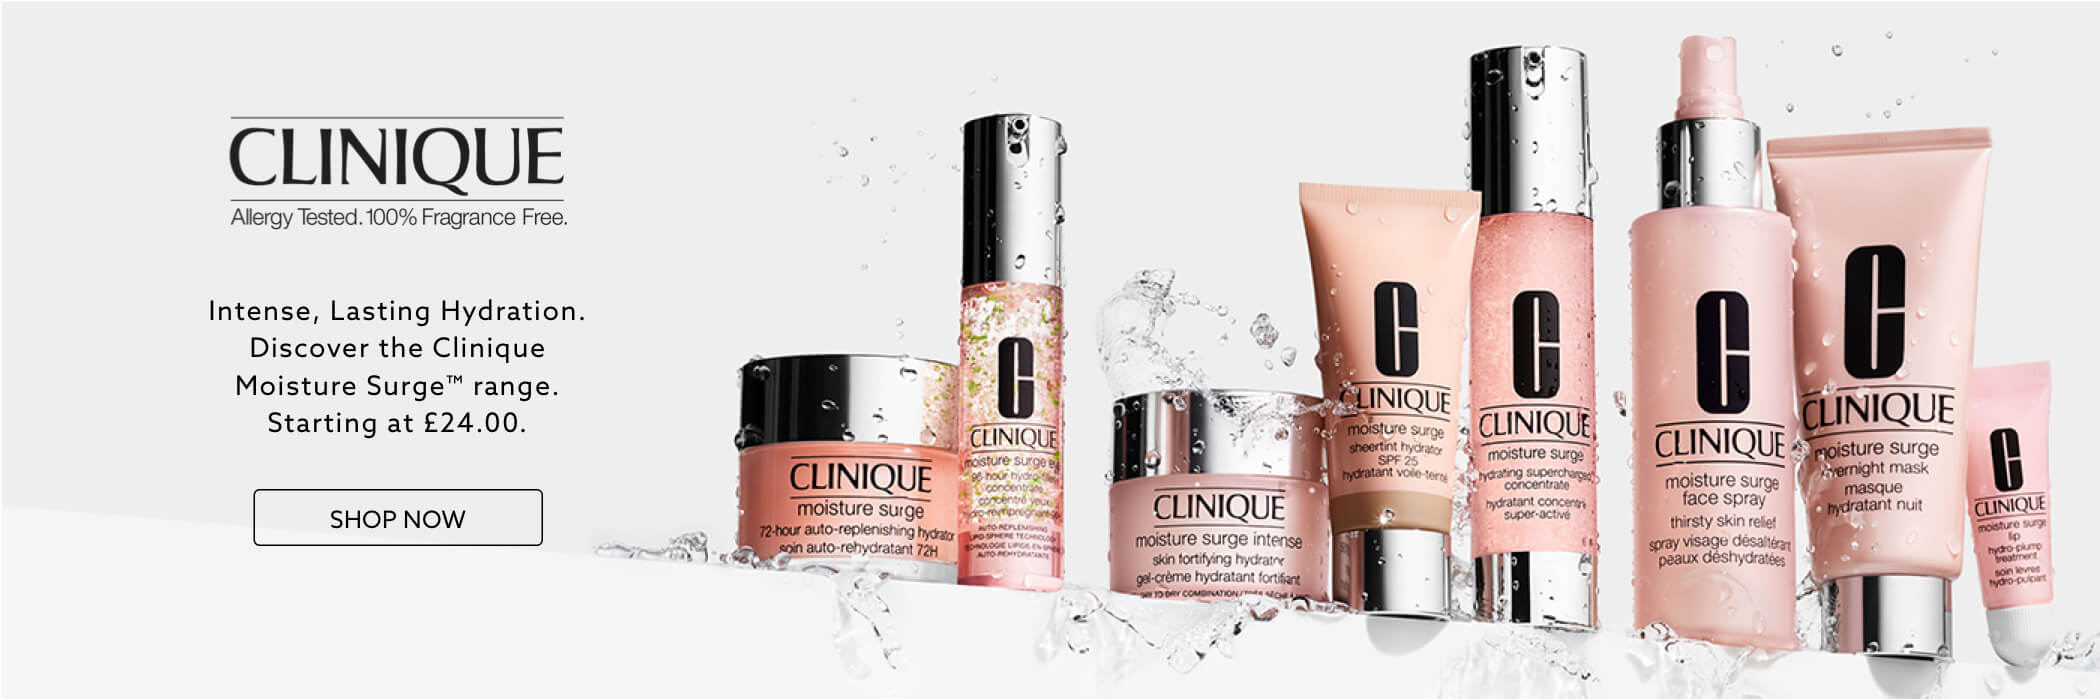 Clinique - Lasting Hydration